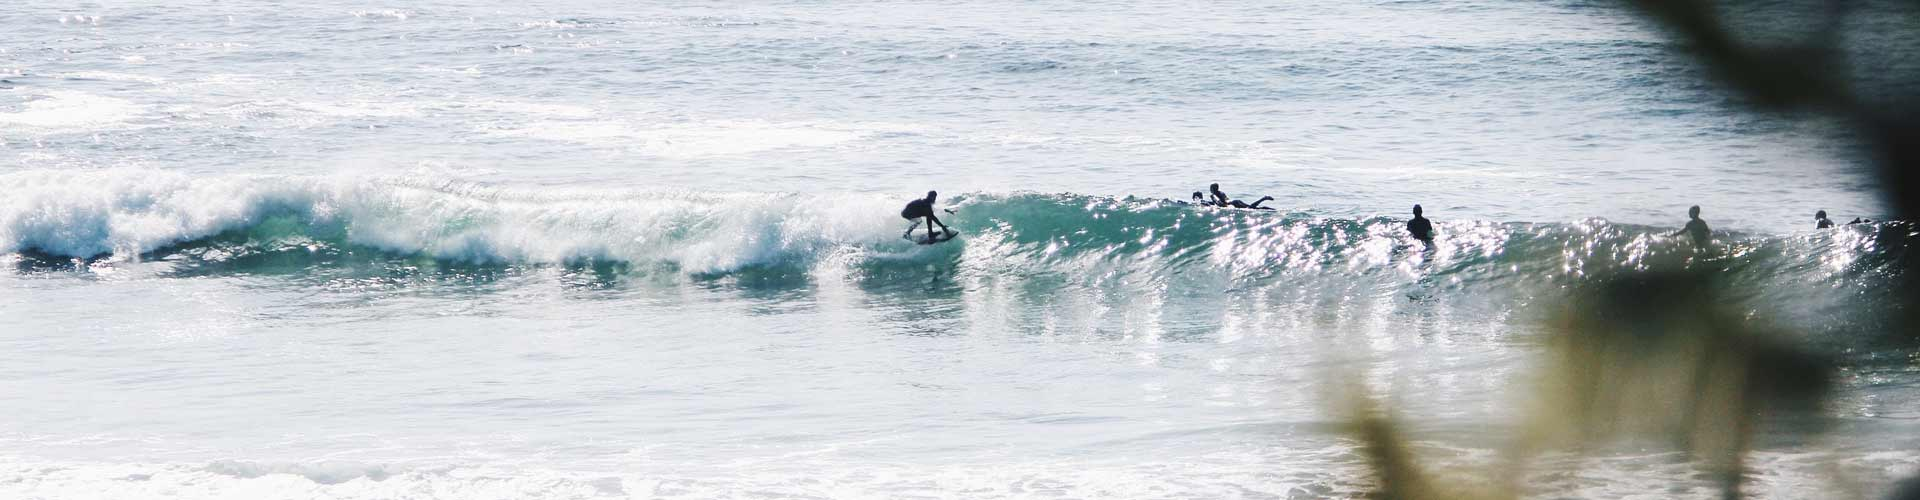 Surf course in Playa del Ingles